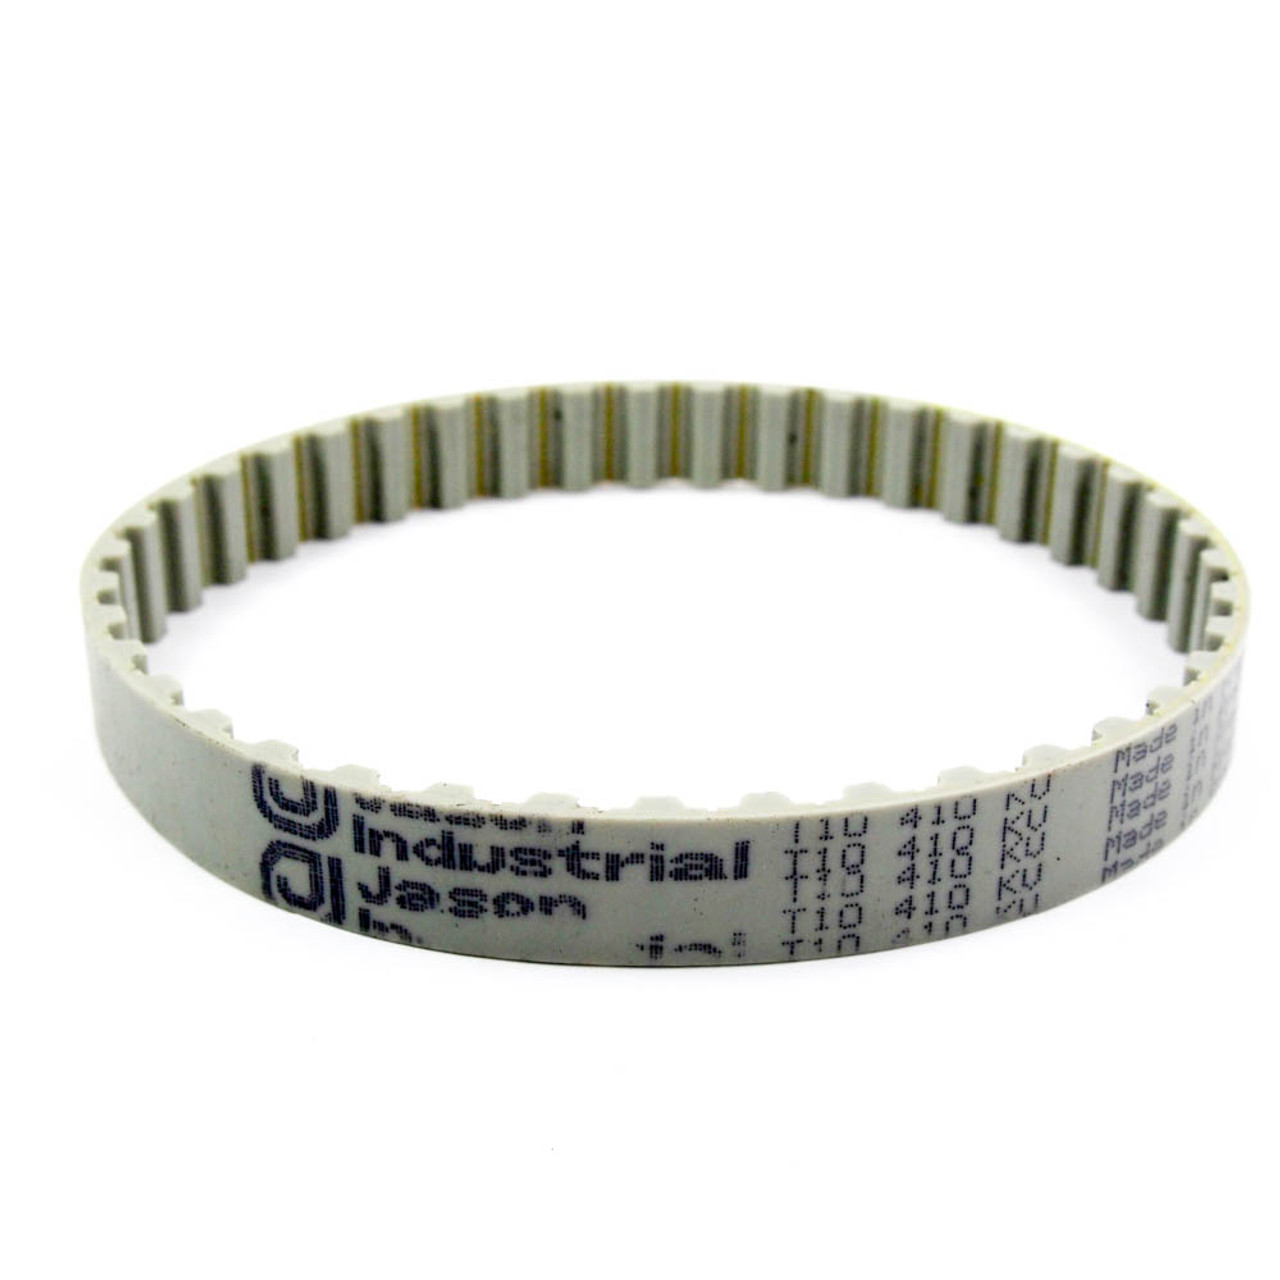 Jason Industrial 420-5M-20 5mm Tooth Profile HTB Timing Belt